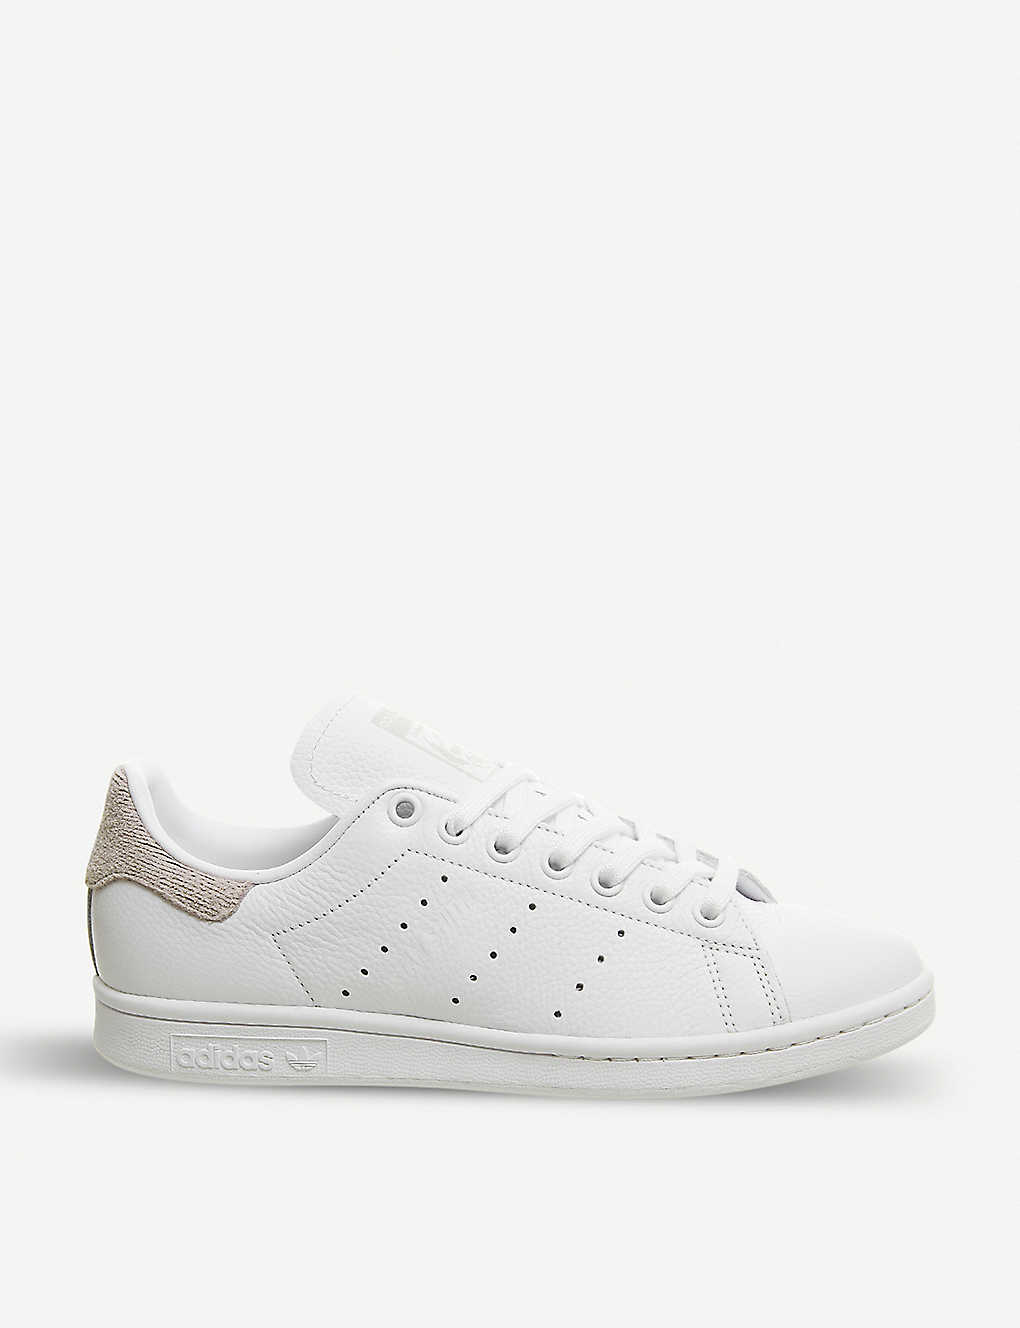 reputable site 7c609 bd769 ADIDAS - Stan Smith leather trainers | Selfridges.com